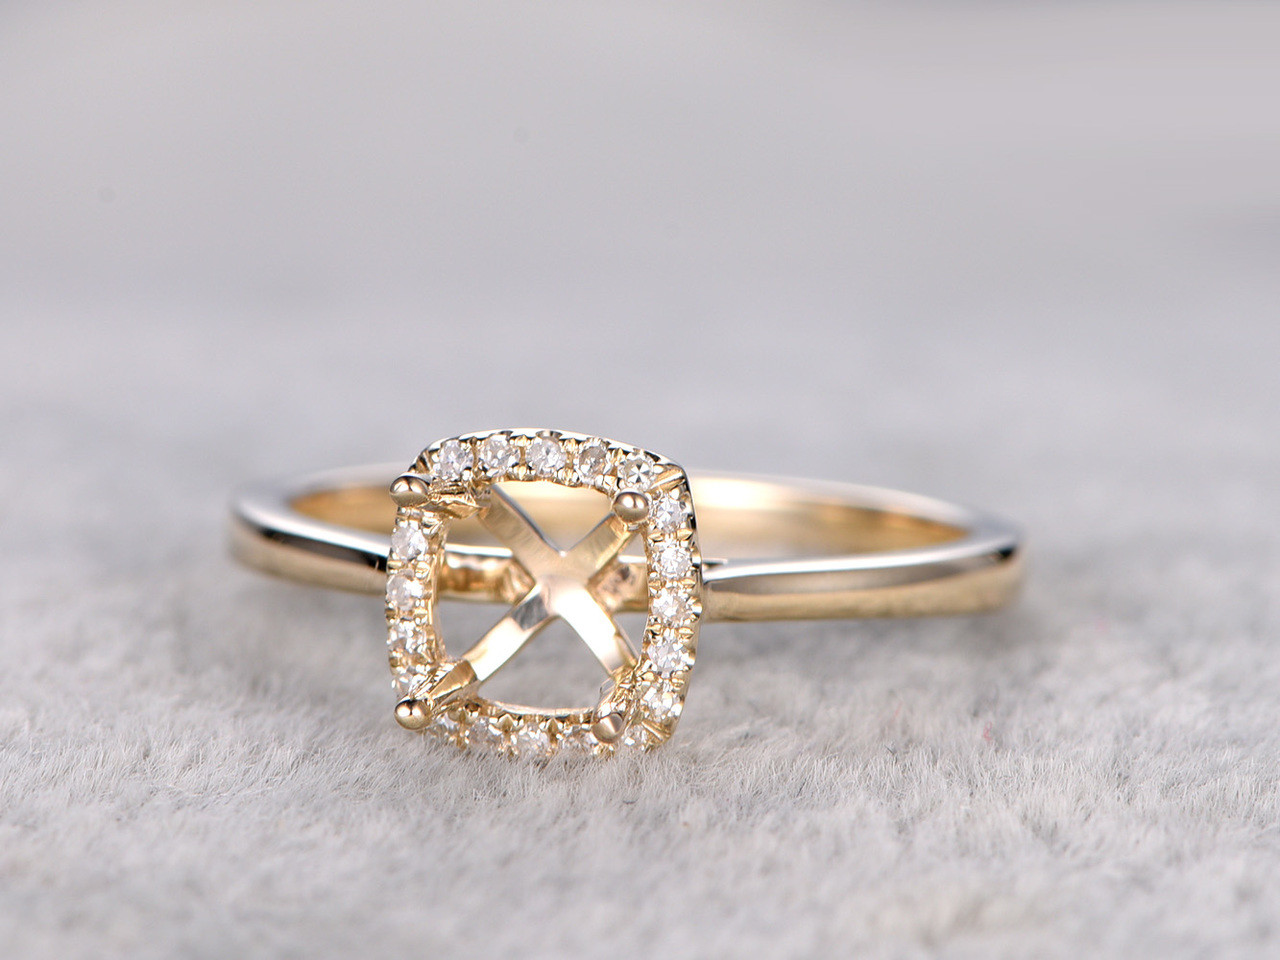 rings vintage square ring certified and cut inspired yellow elegant stunning asscher solitaire engagement wedding pave vega classic jewelry in products gold gia diamond handcrafted shoulders bashert